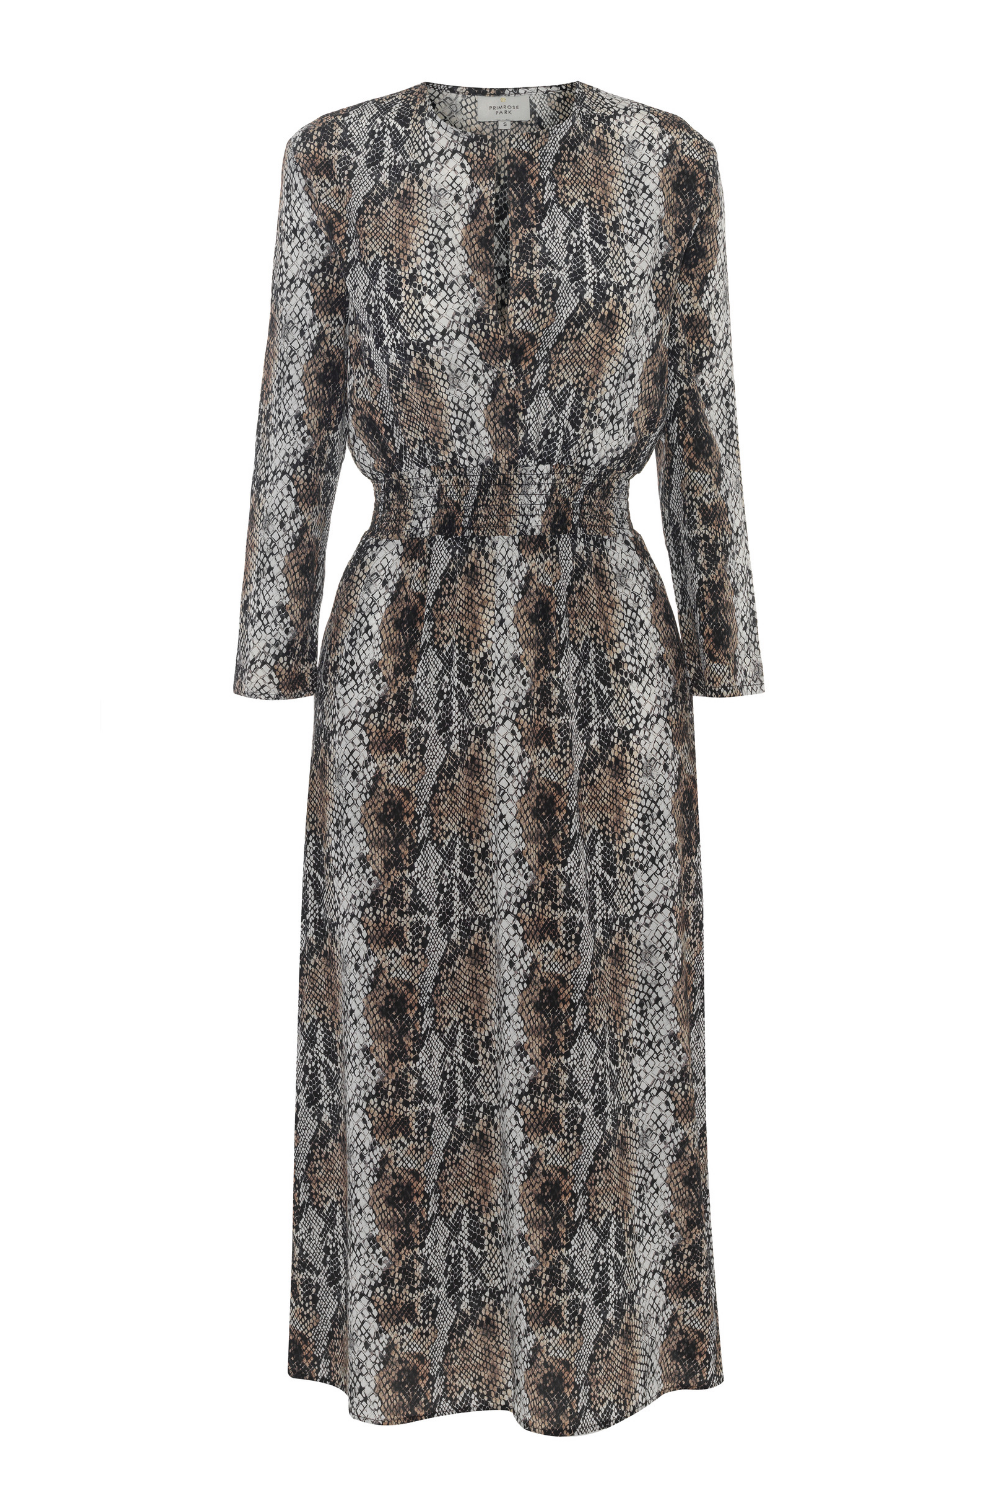 Primrose Park Tiffany Snake Dress